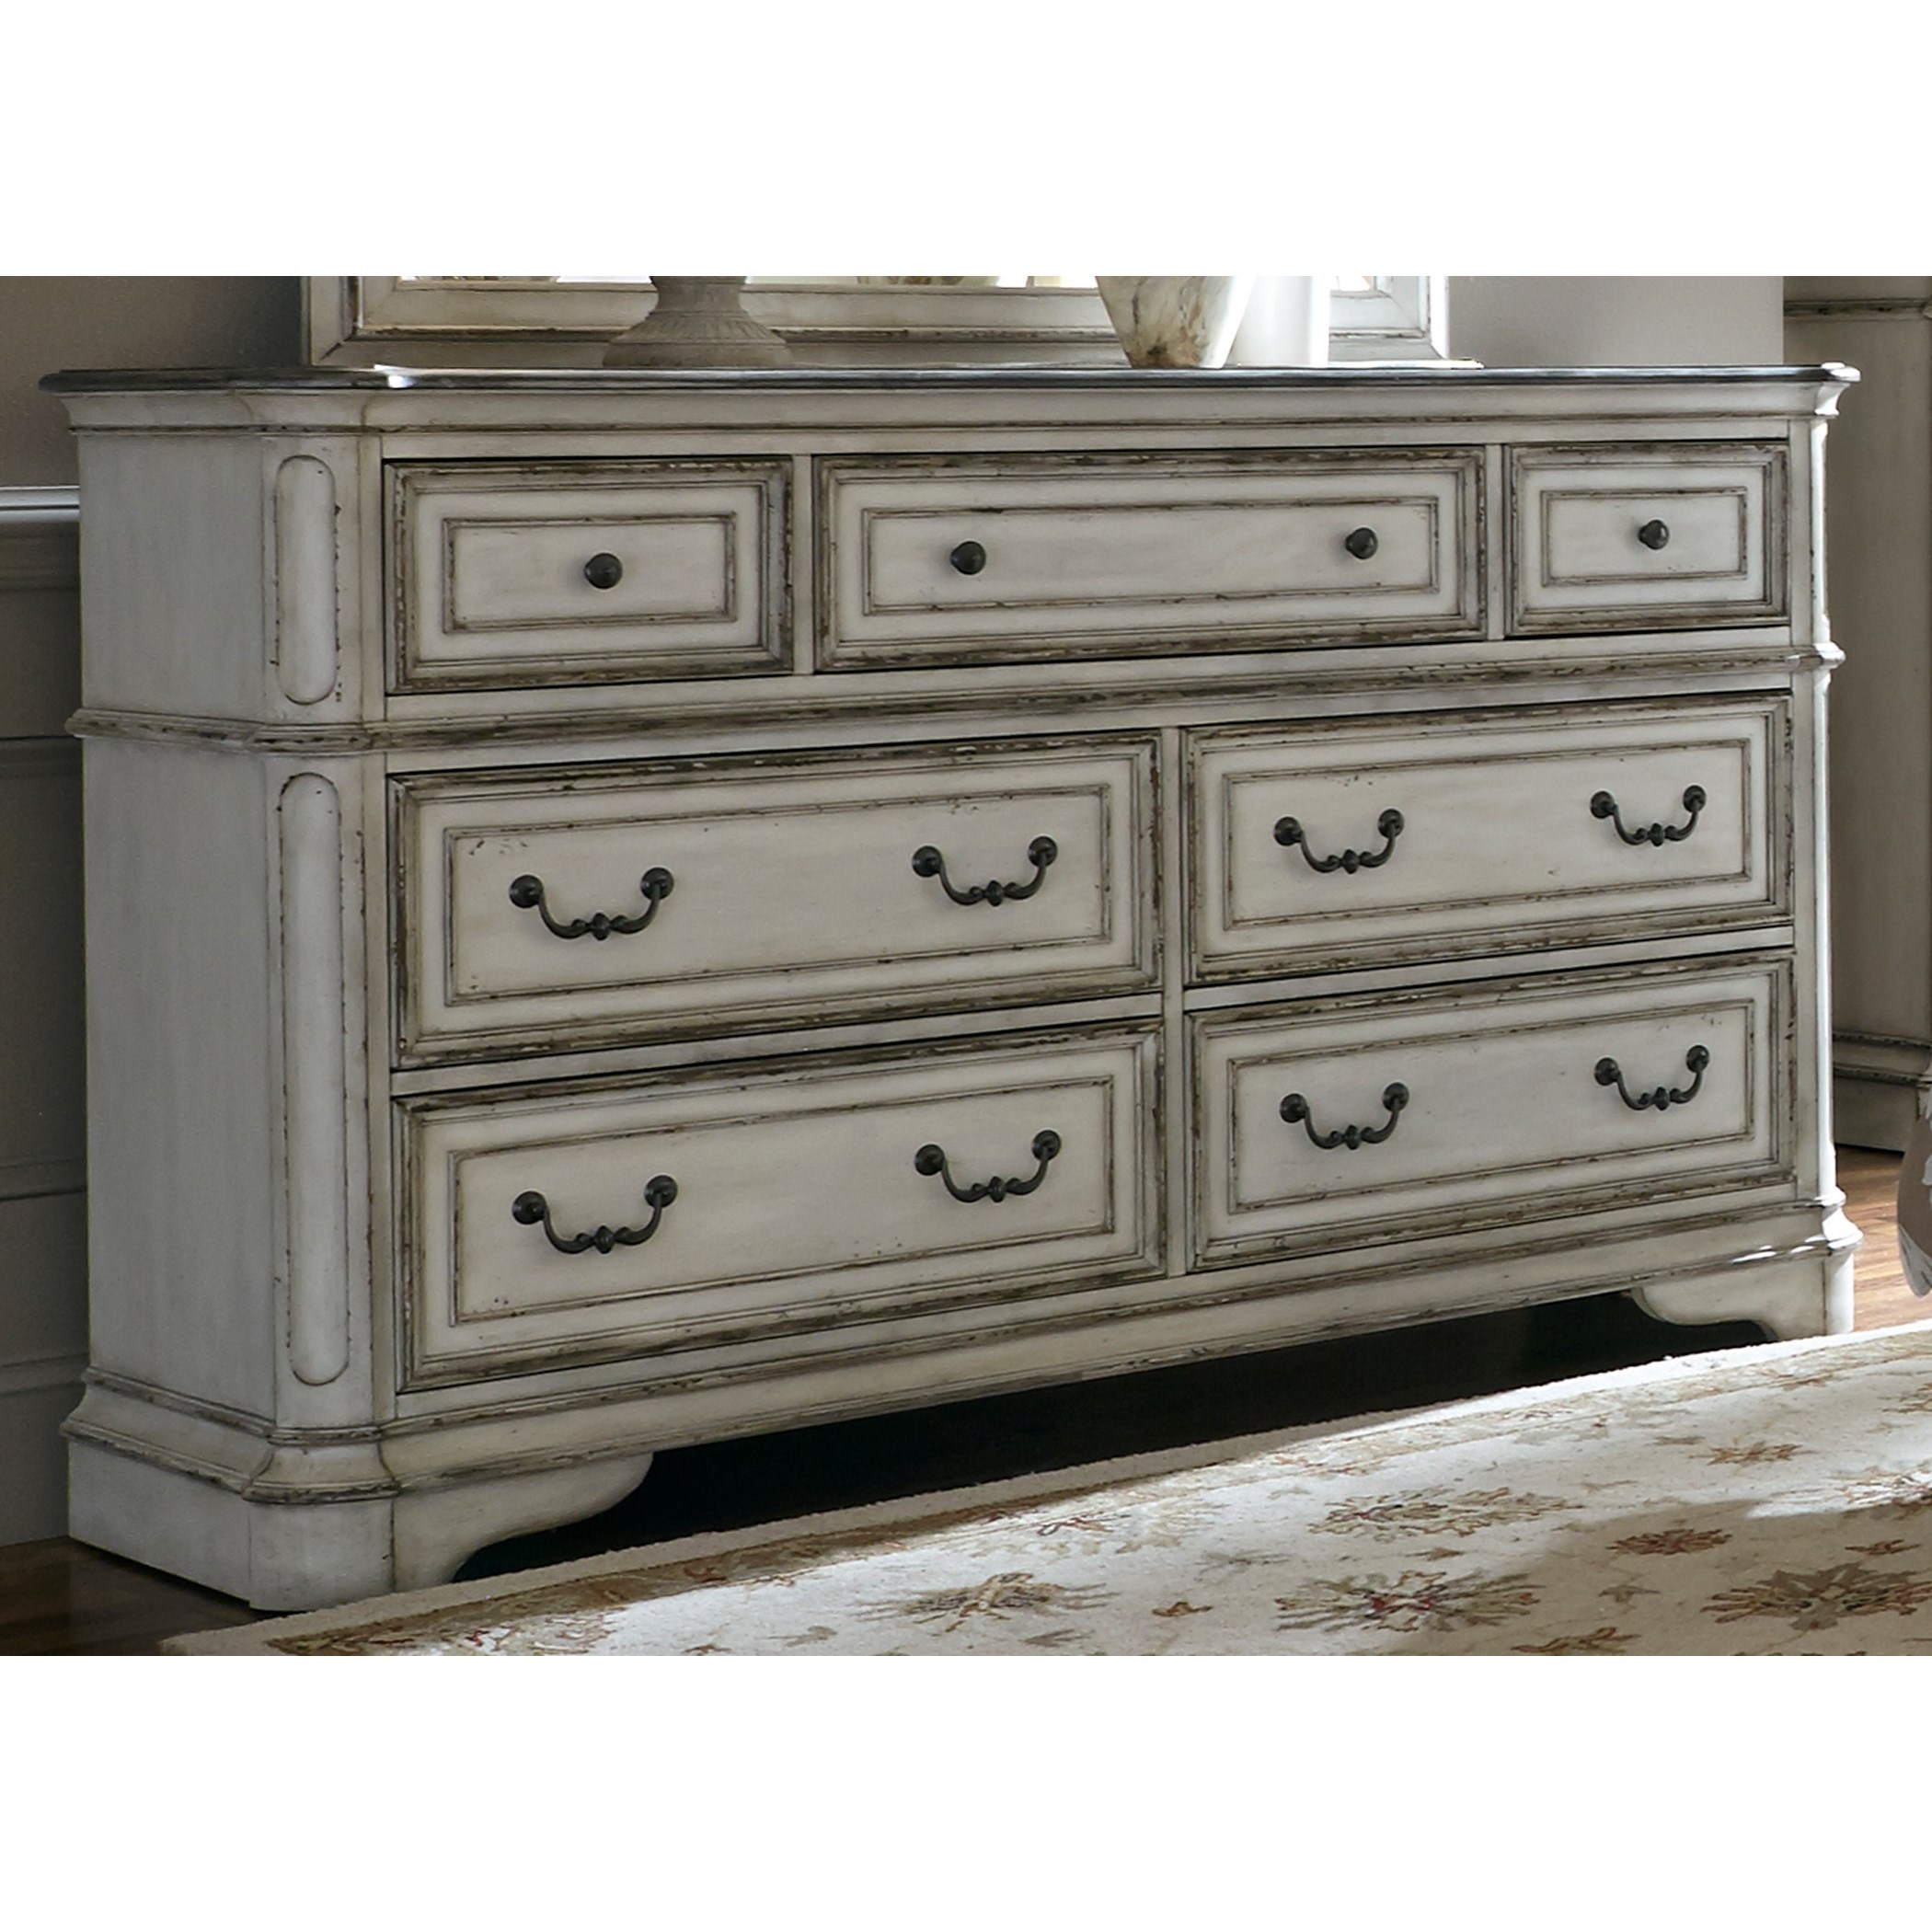 Liberty Furniture Magnolia Manor 244 Br31 7 Drawer Dresser With Felt Lined Top Drawers Great